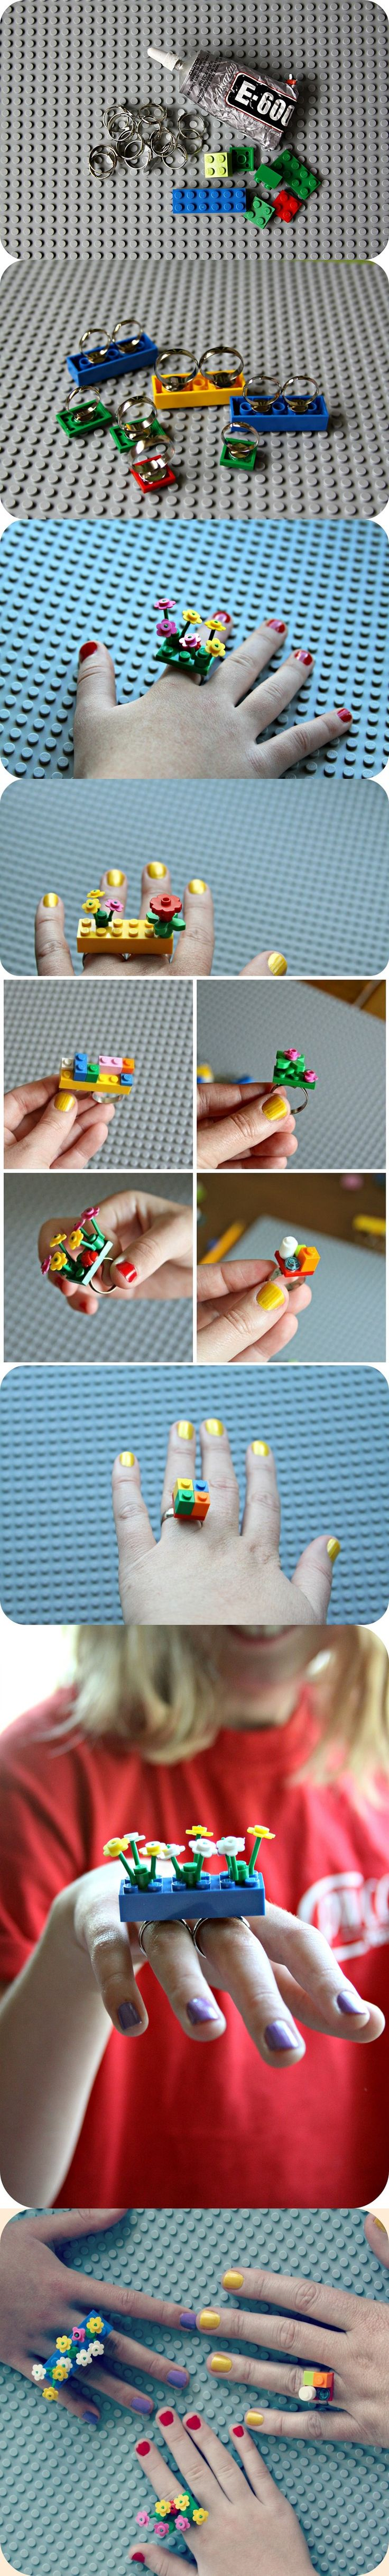 LEGO Rings #LEGO #rings #ring